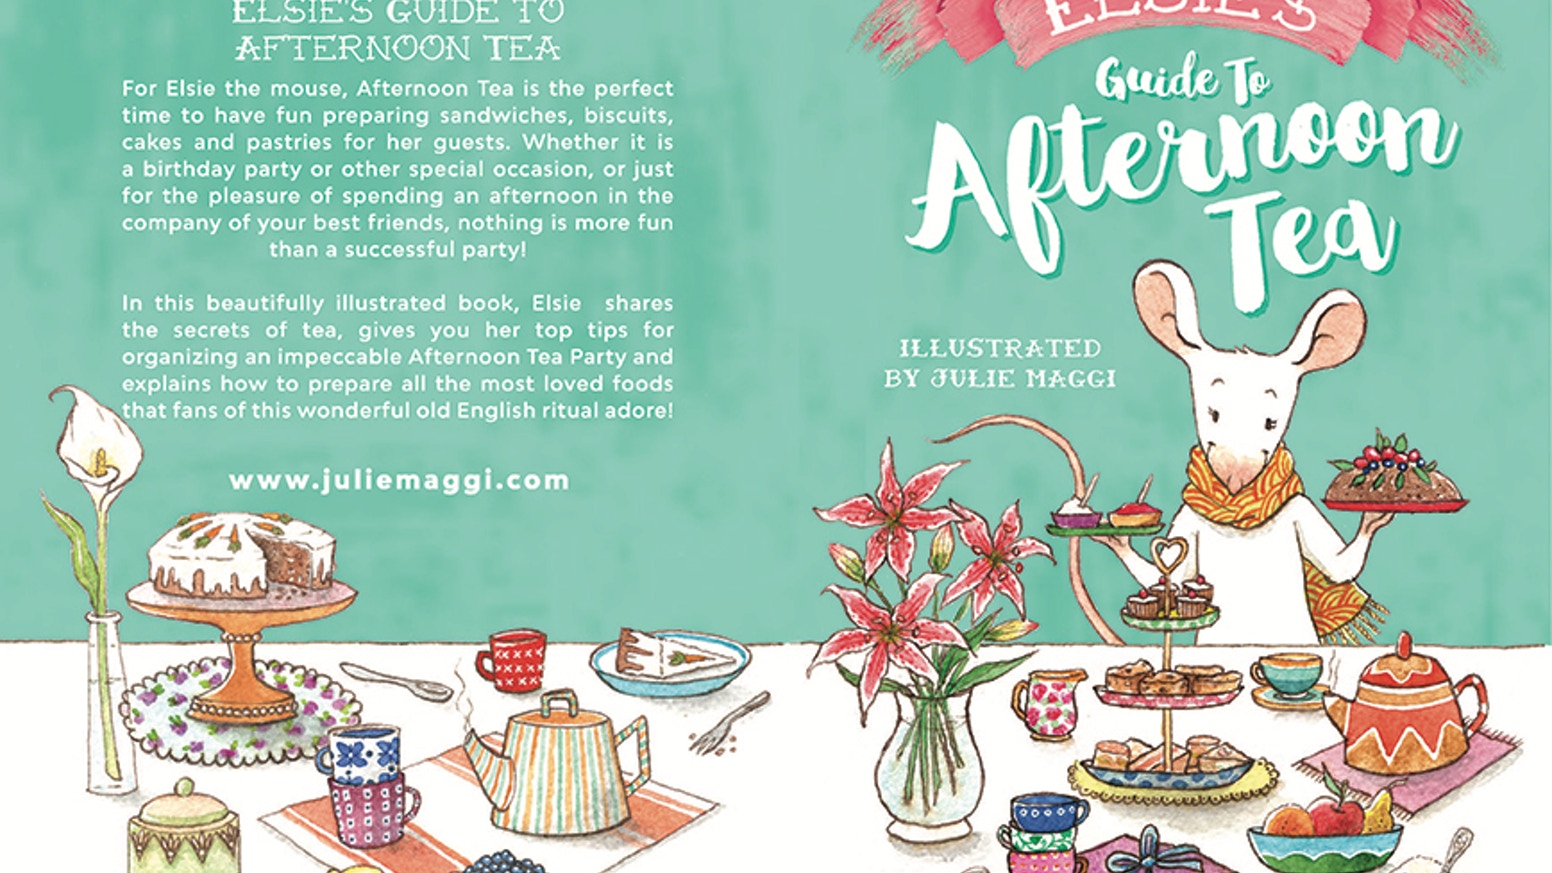 Full of recipes, tips and secrets, this book is the perfect gift for those who love tea parties and Afternoon Tea fans!